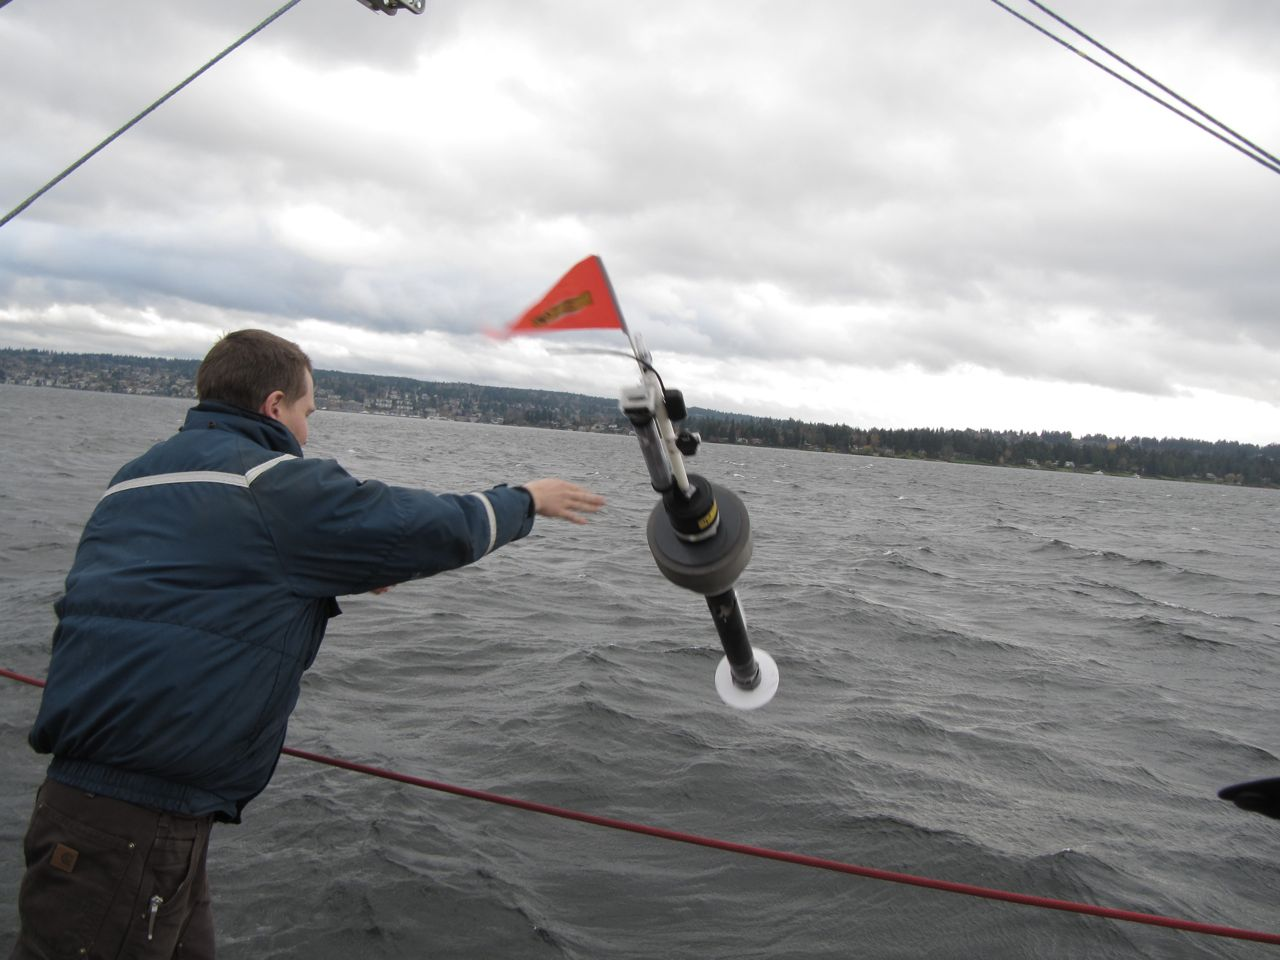 a photograph of the scientist throwing a long, tubular buoy with a red flag on top from a ship into the water.